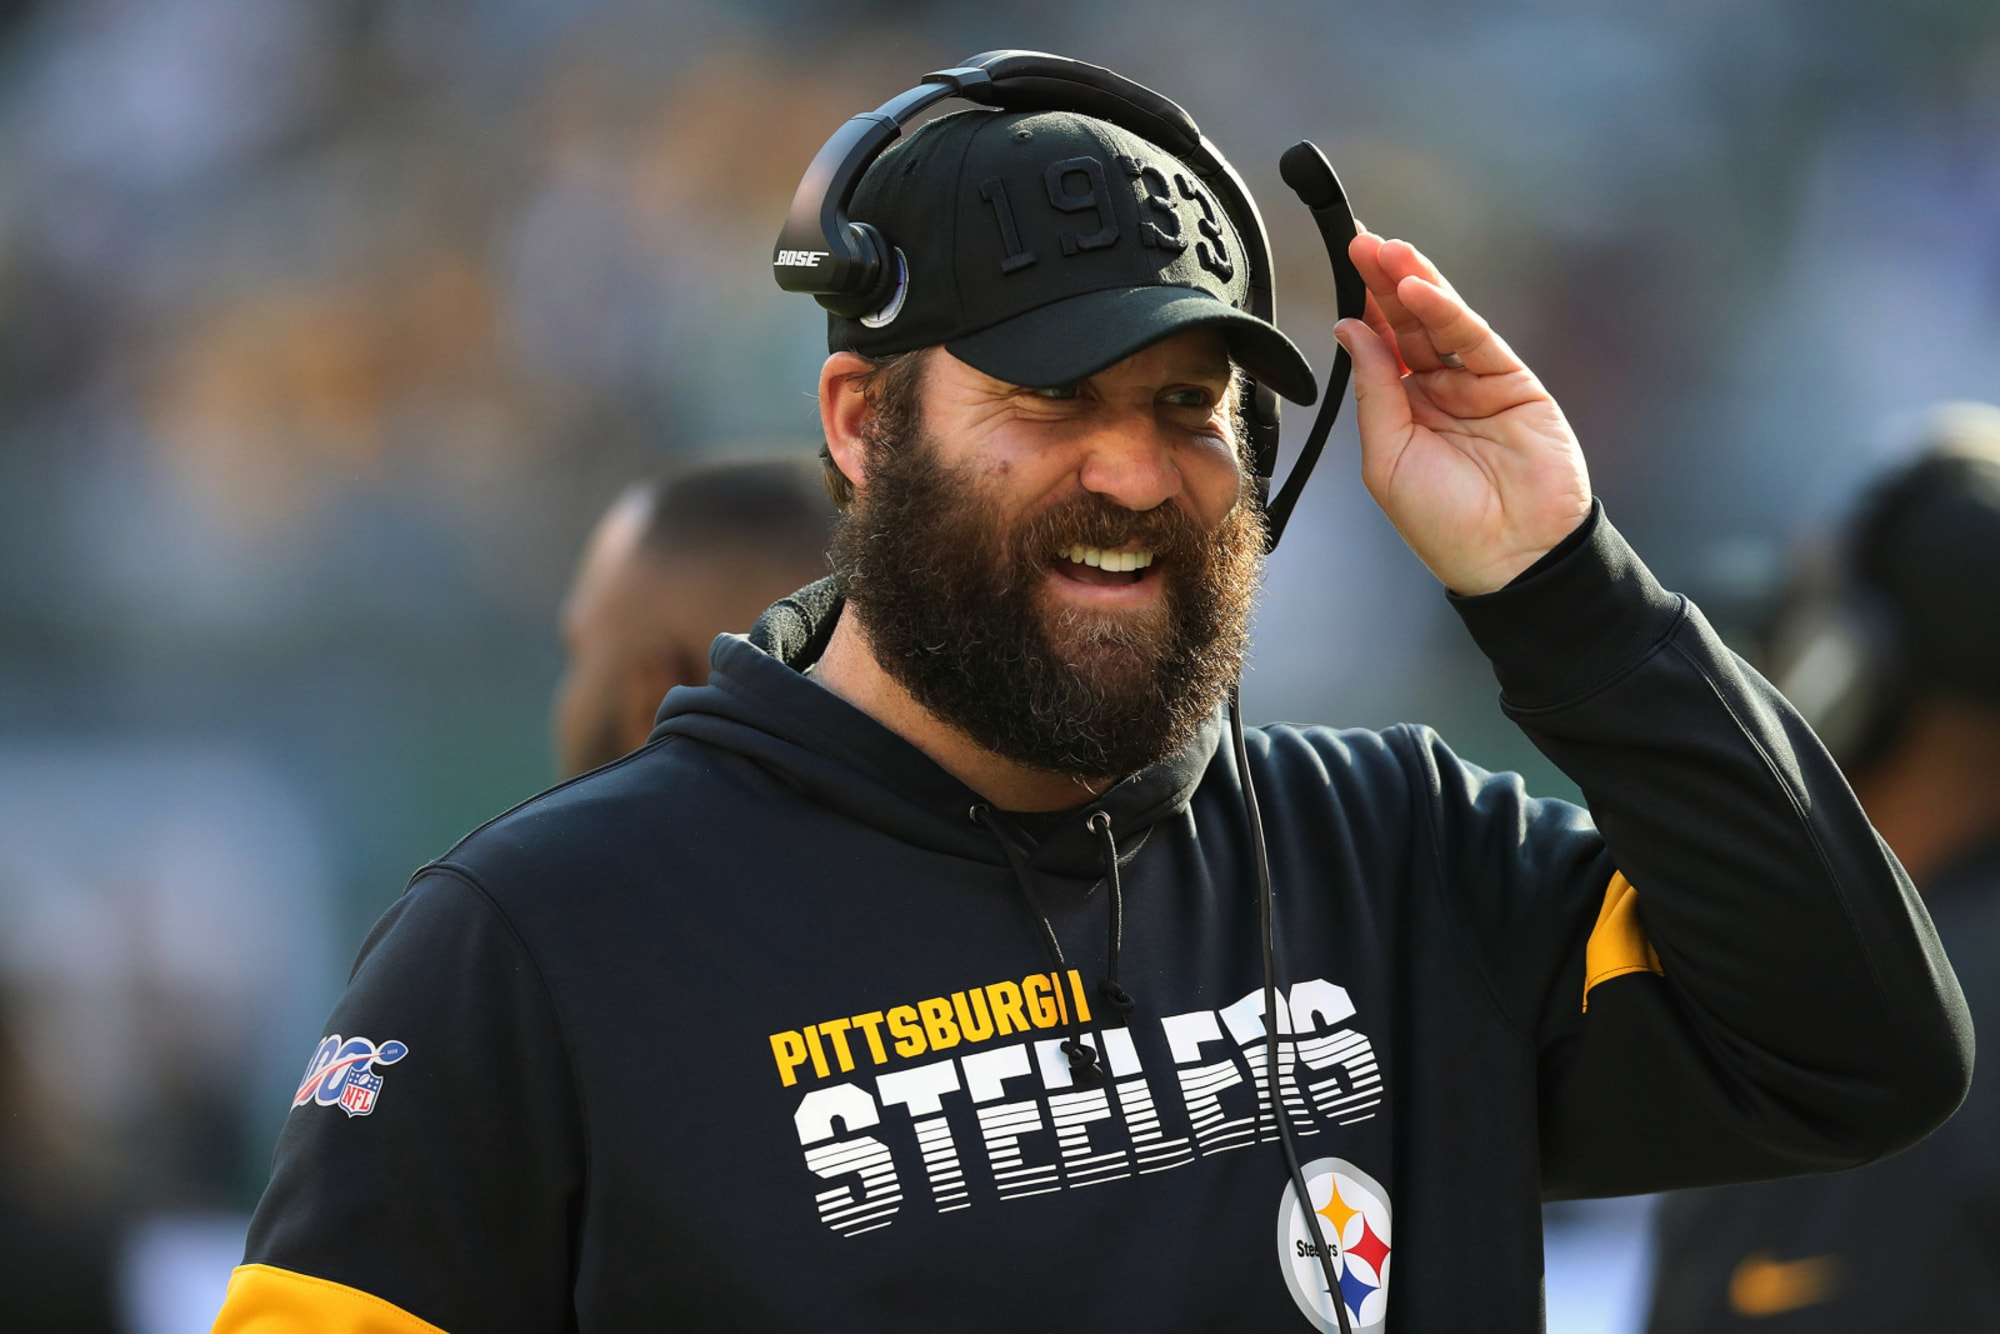 Ben Roethlisberger is primed for a bounceback campaign in 2020